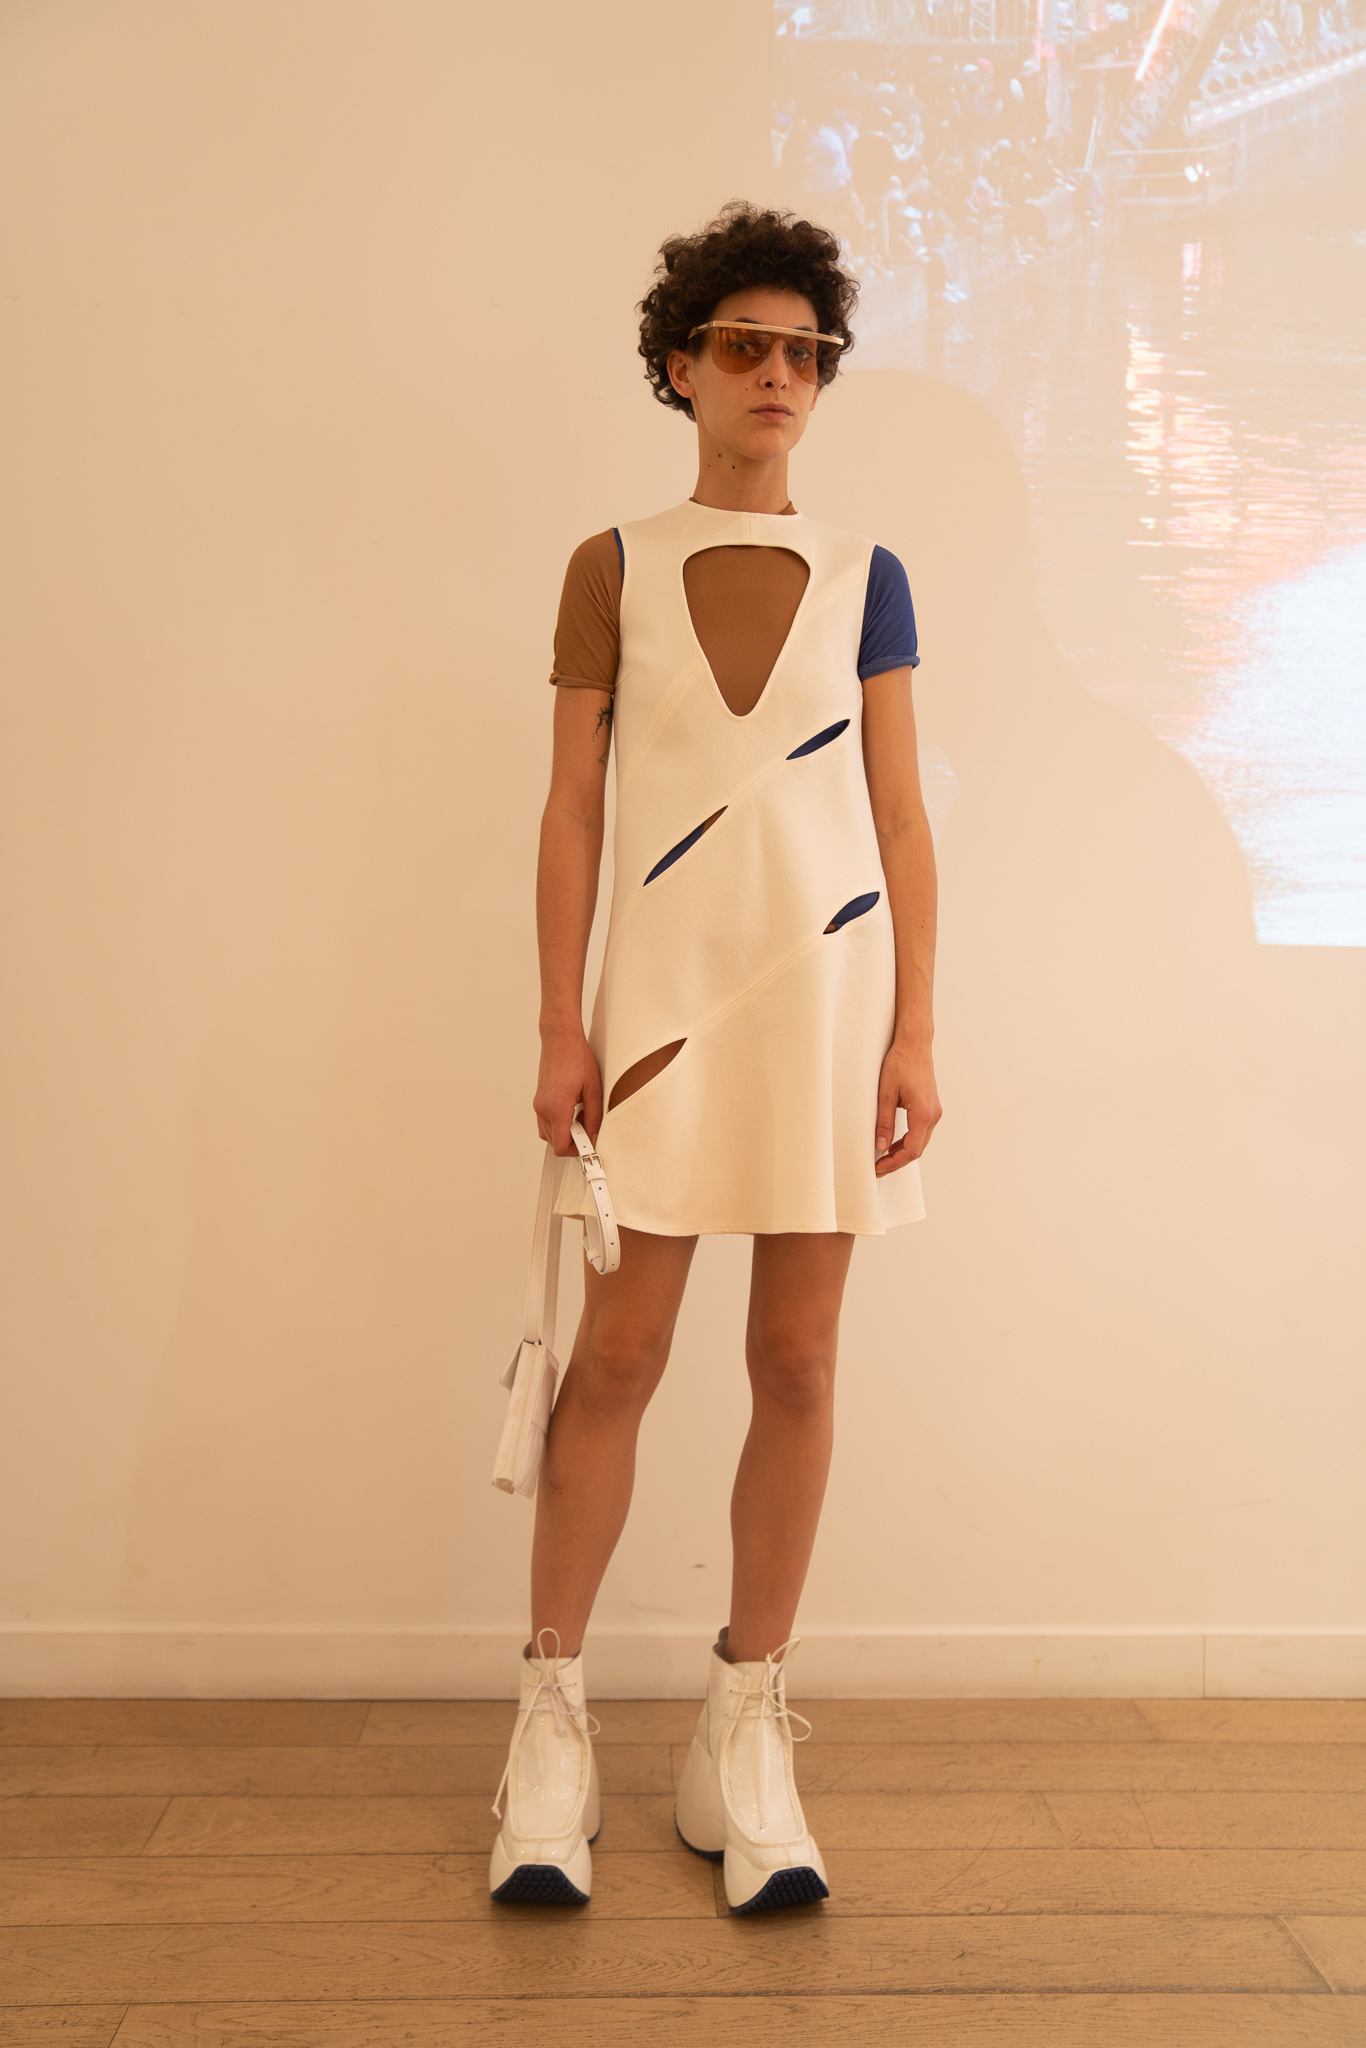 Courreges Cutout Multi Slit Dress in White Contrast Short Sleeve Shirt SS20